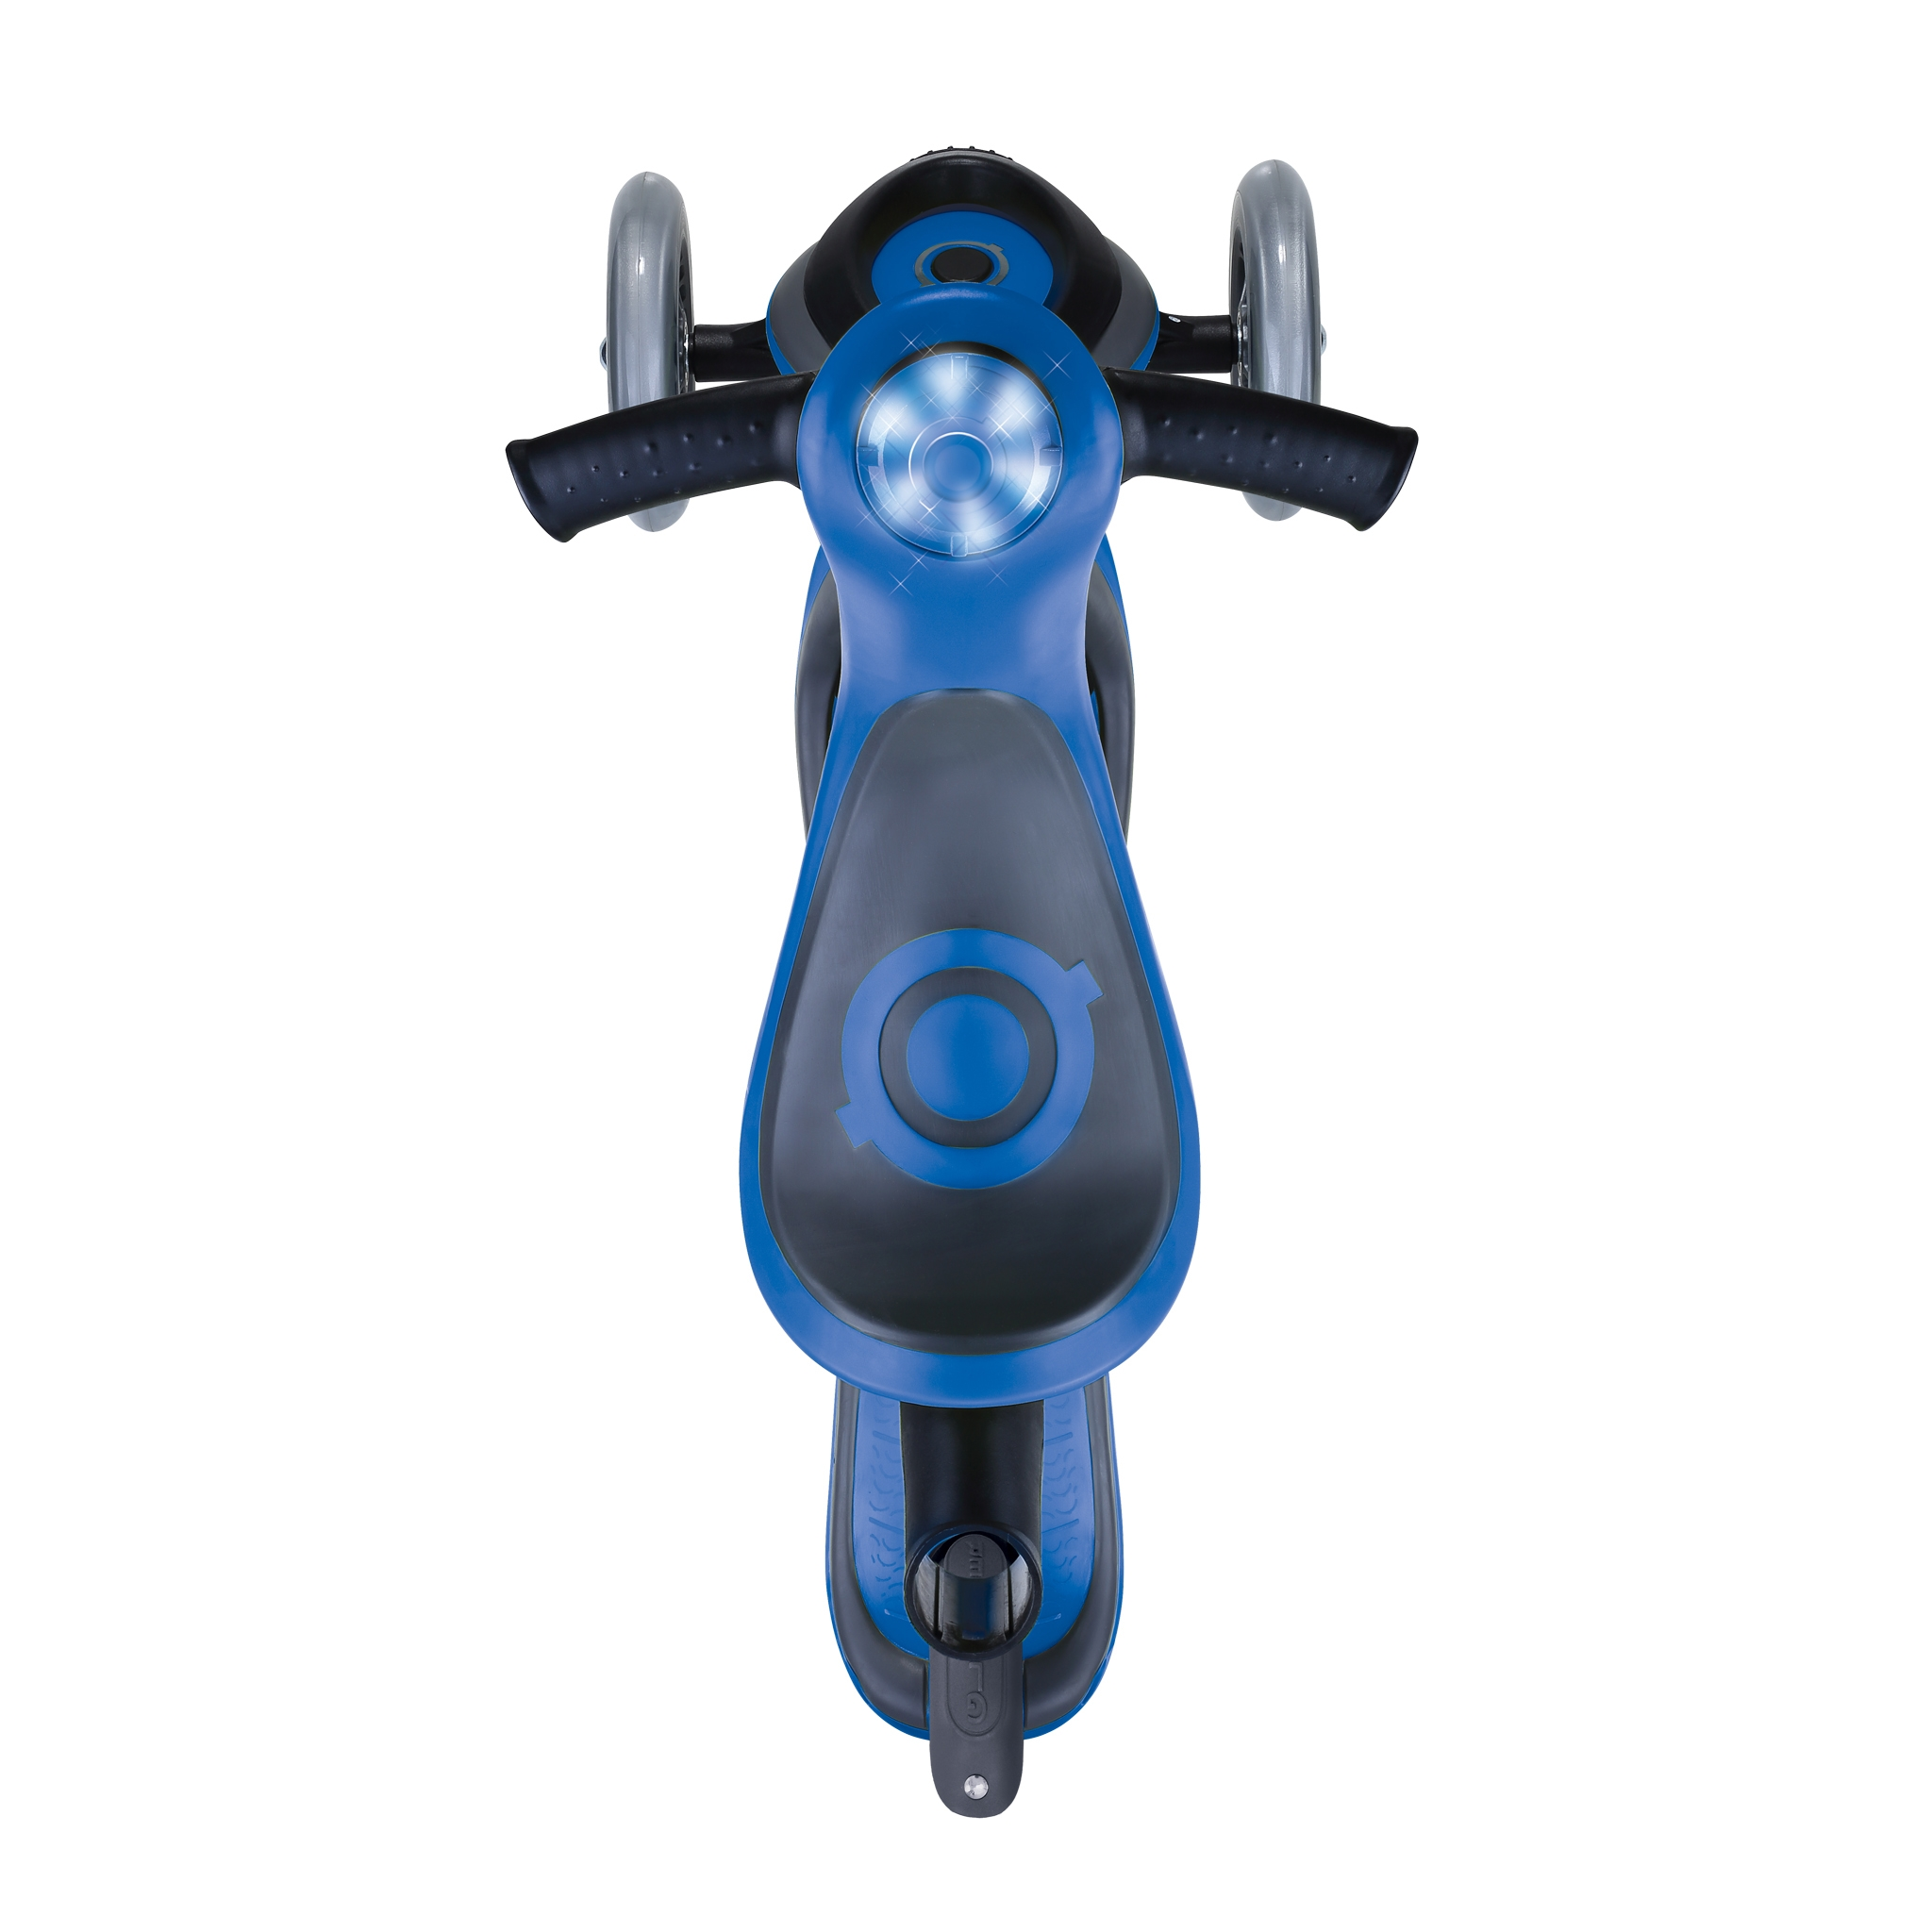 GO-UP-COMFORT-PLAY-scooter-with-extra-wide-seat_navy-blue 3